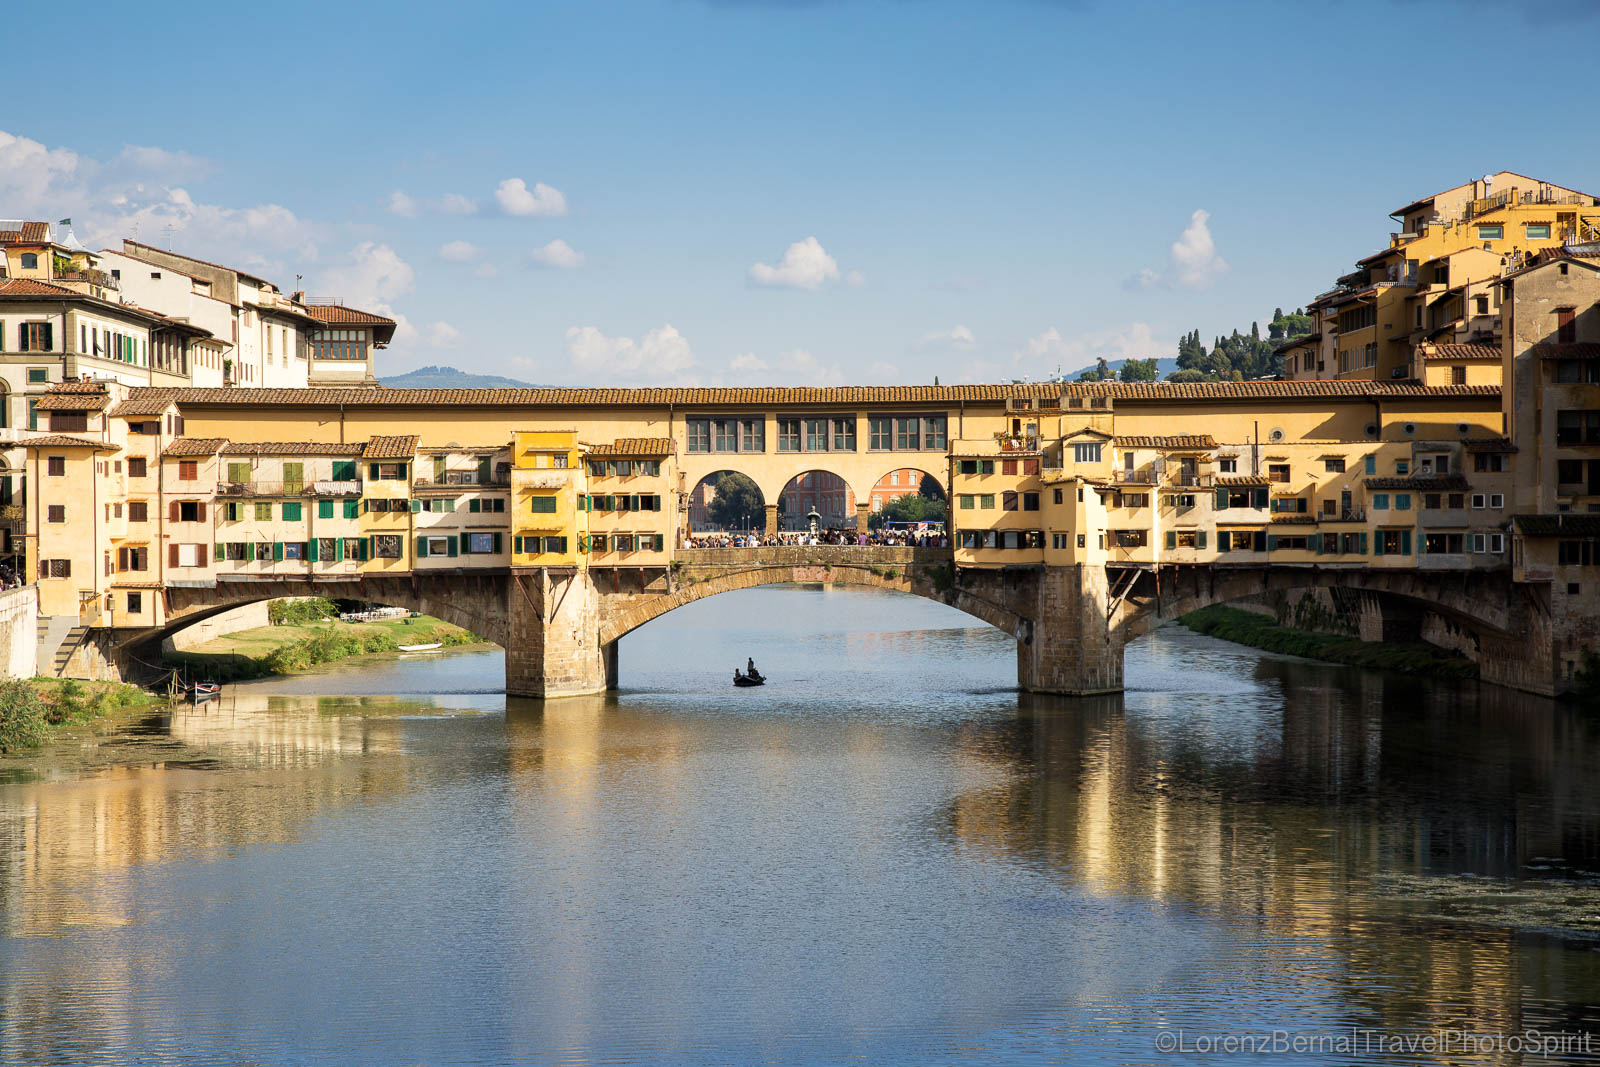 The City emblematic Ponte Vecchio (Old Bridge) crossing over the Arno river, Florence, Tuscany, Italy.